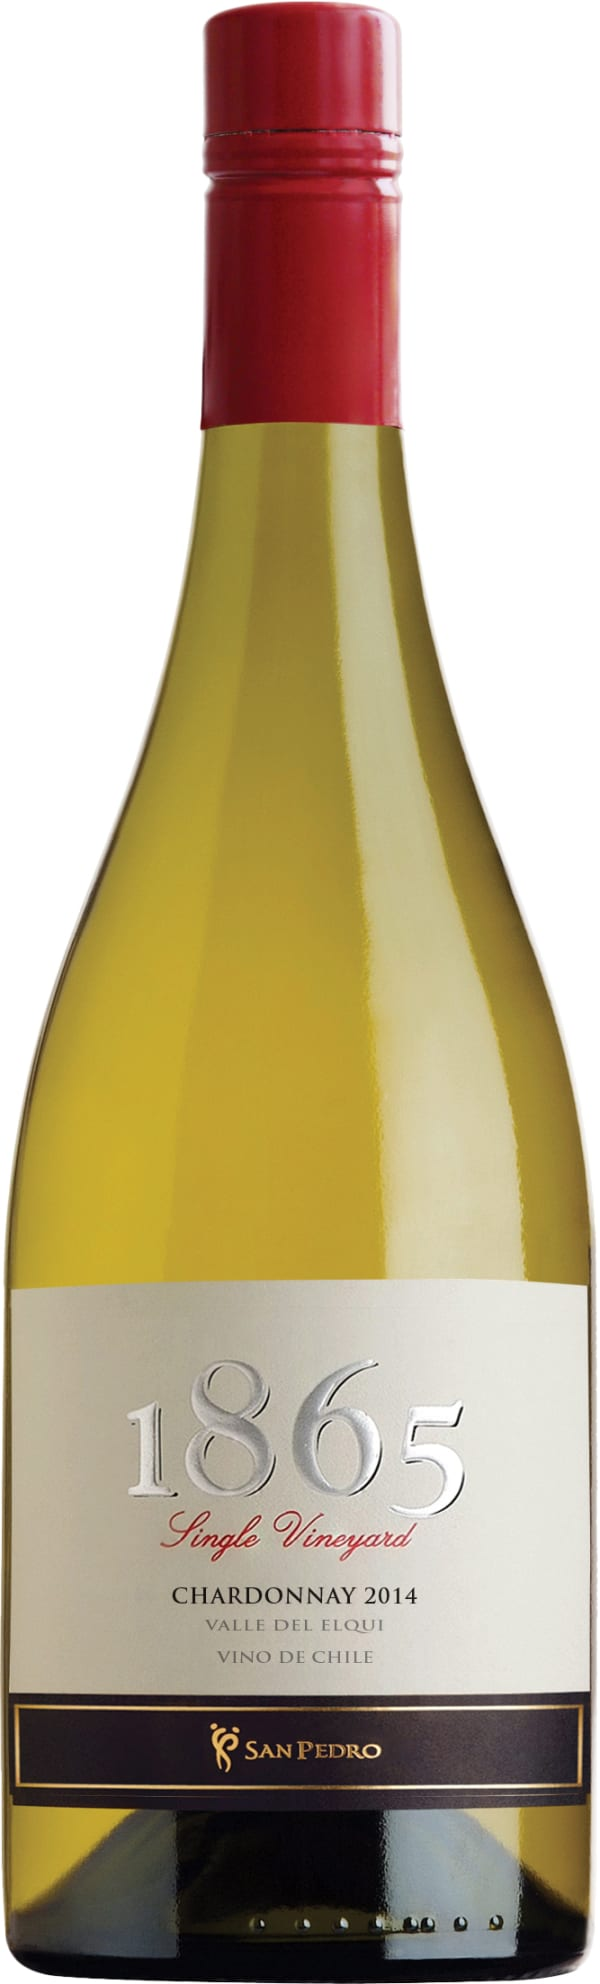 1865 Single Vineyard Chardonnay 2015